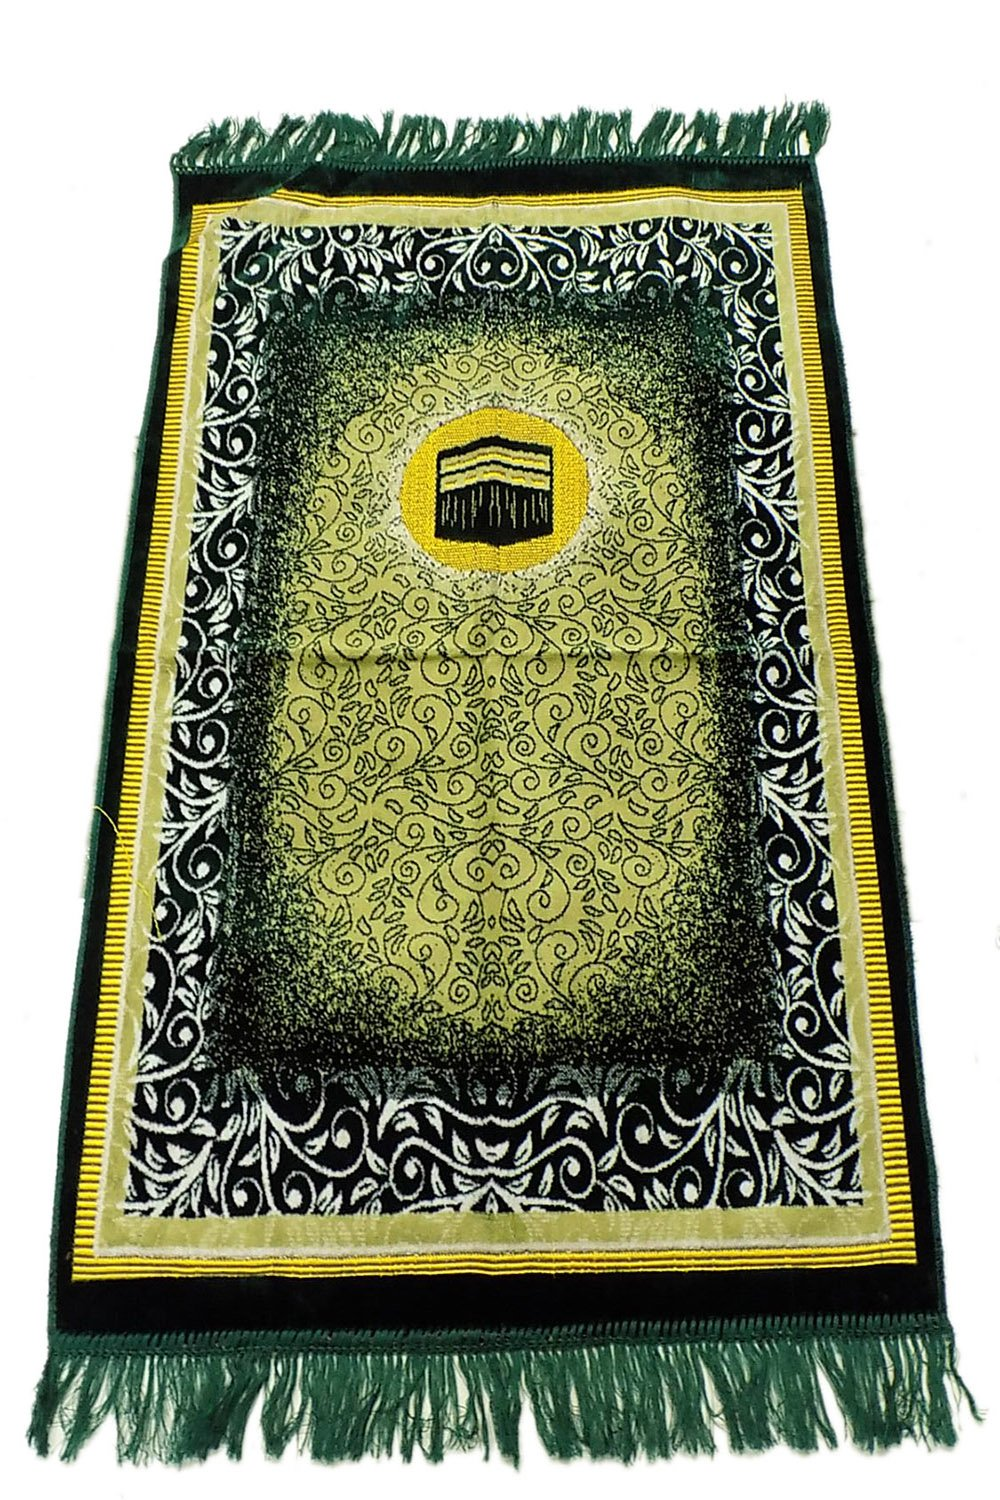 Prayer Rug Made in Turkey with Fine Soft Velvet Superior Quality Green